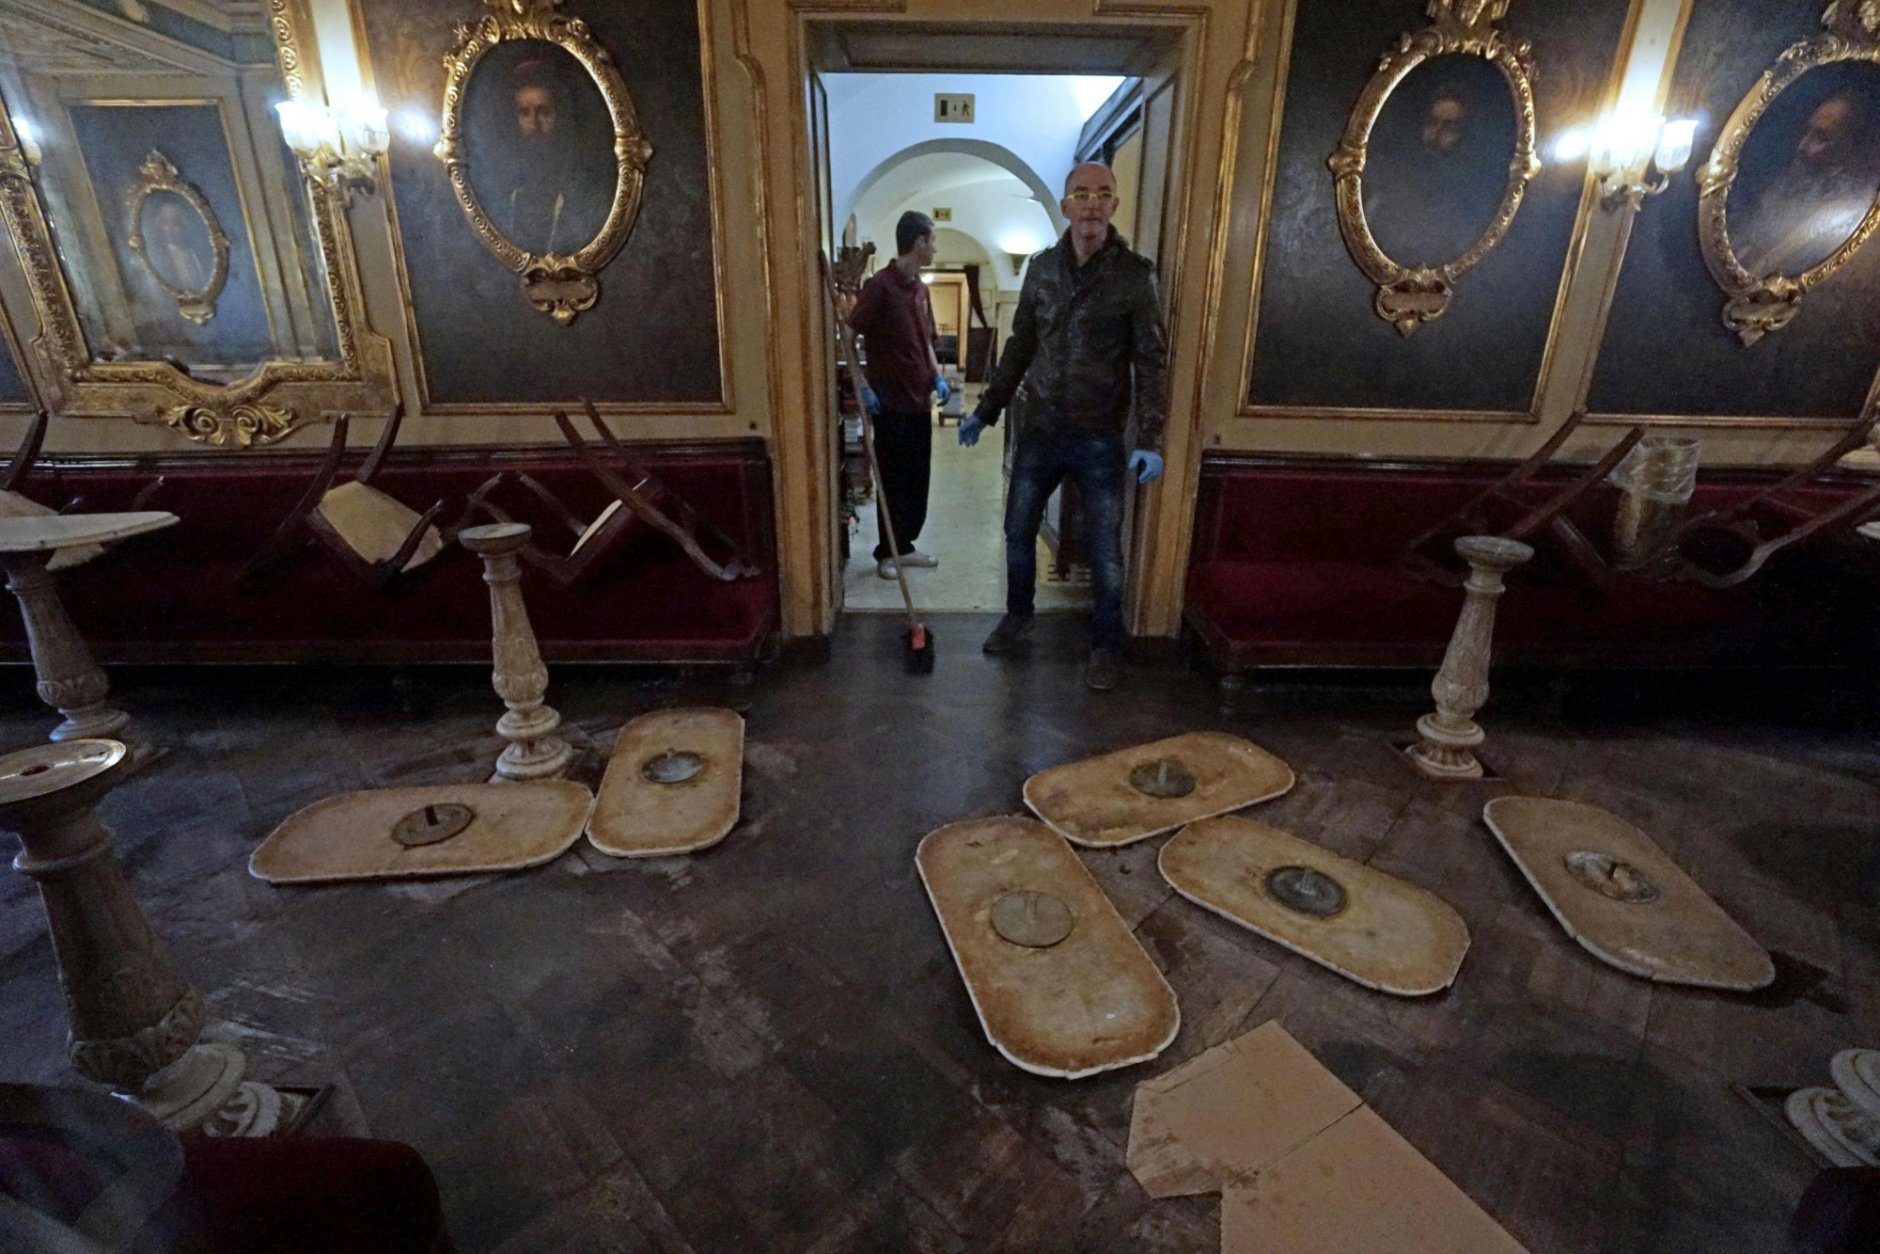 Upturned chairs and unmounted table tops lie on the floor inside the historic Caffe Florian, in San Marco square, in Venice, Italy, Tuesday, Oct.30 2018. High winds created an exceptional tide in Venice on Monday, covering three-quarters of the city for the first time in a decade. Water levels were forecast Tuesday at 110 centimeters (43.3 inches), flooding 12 percent of the famed lagoon city. (Andrea Merola/ANSA via AP)